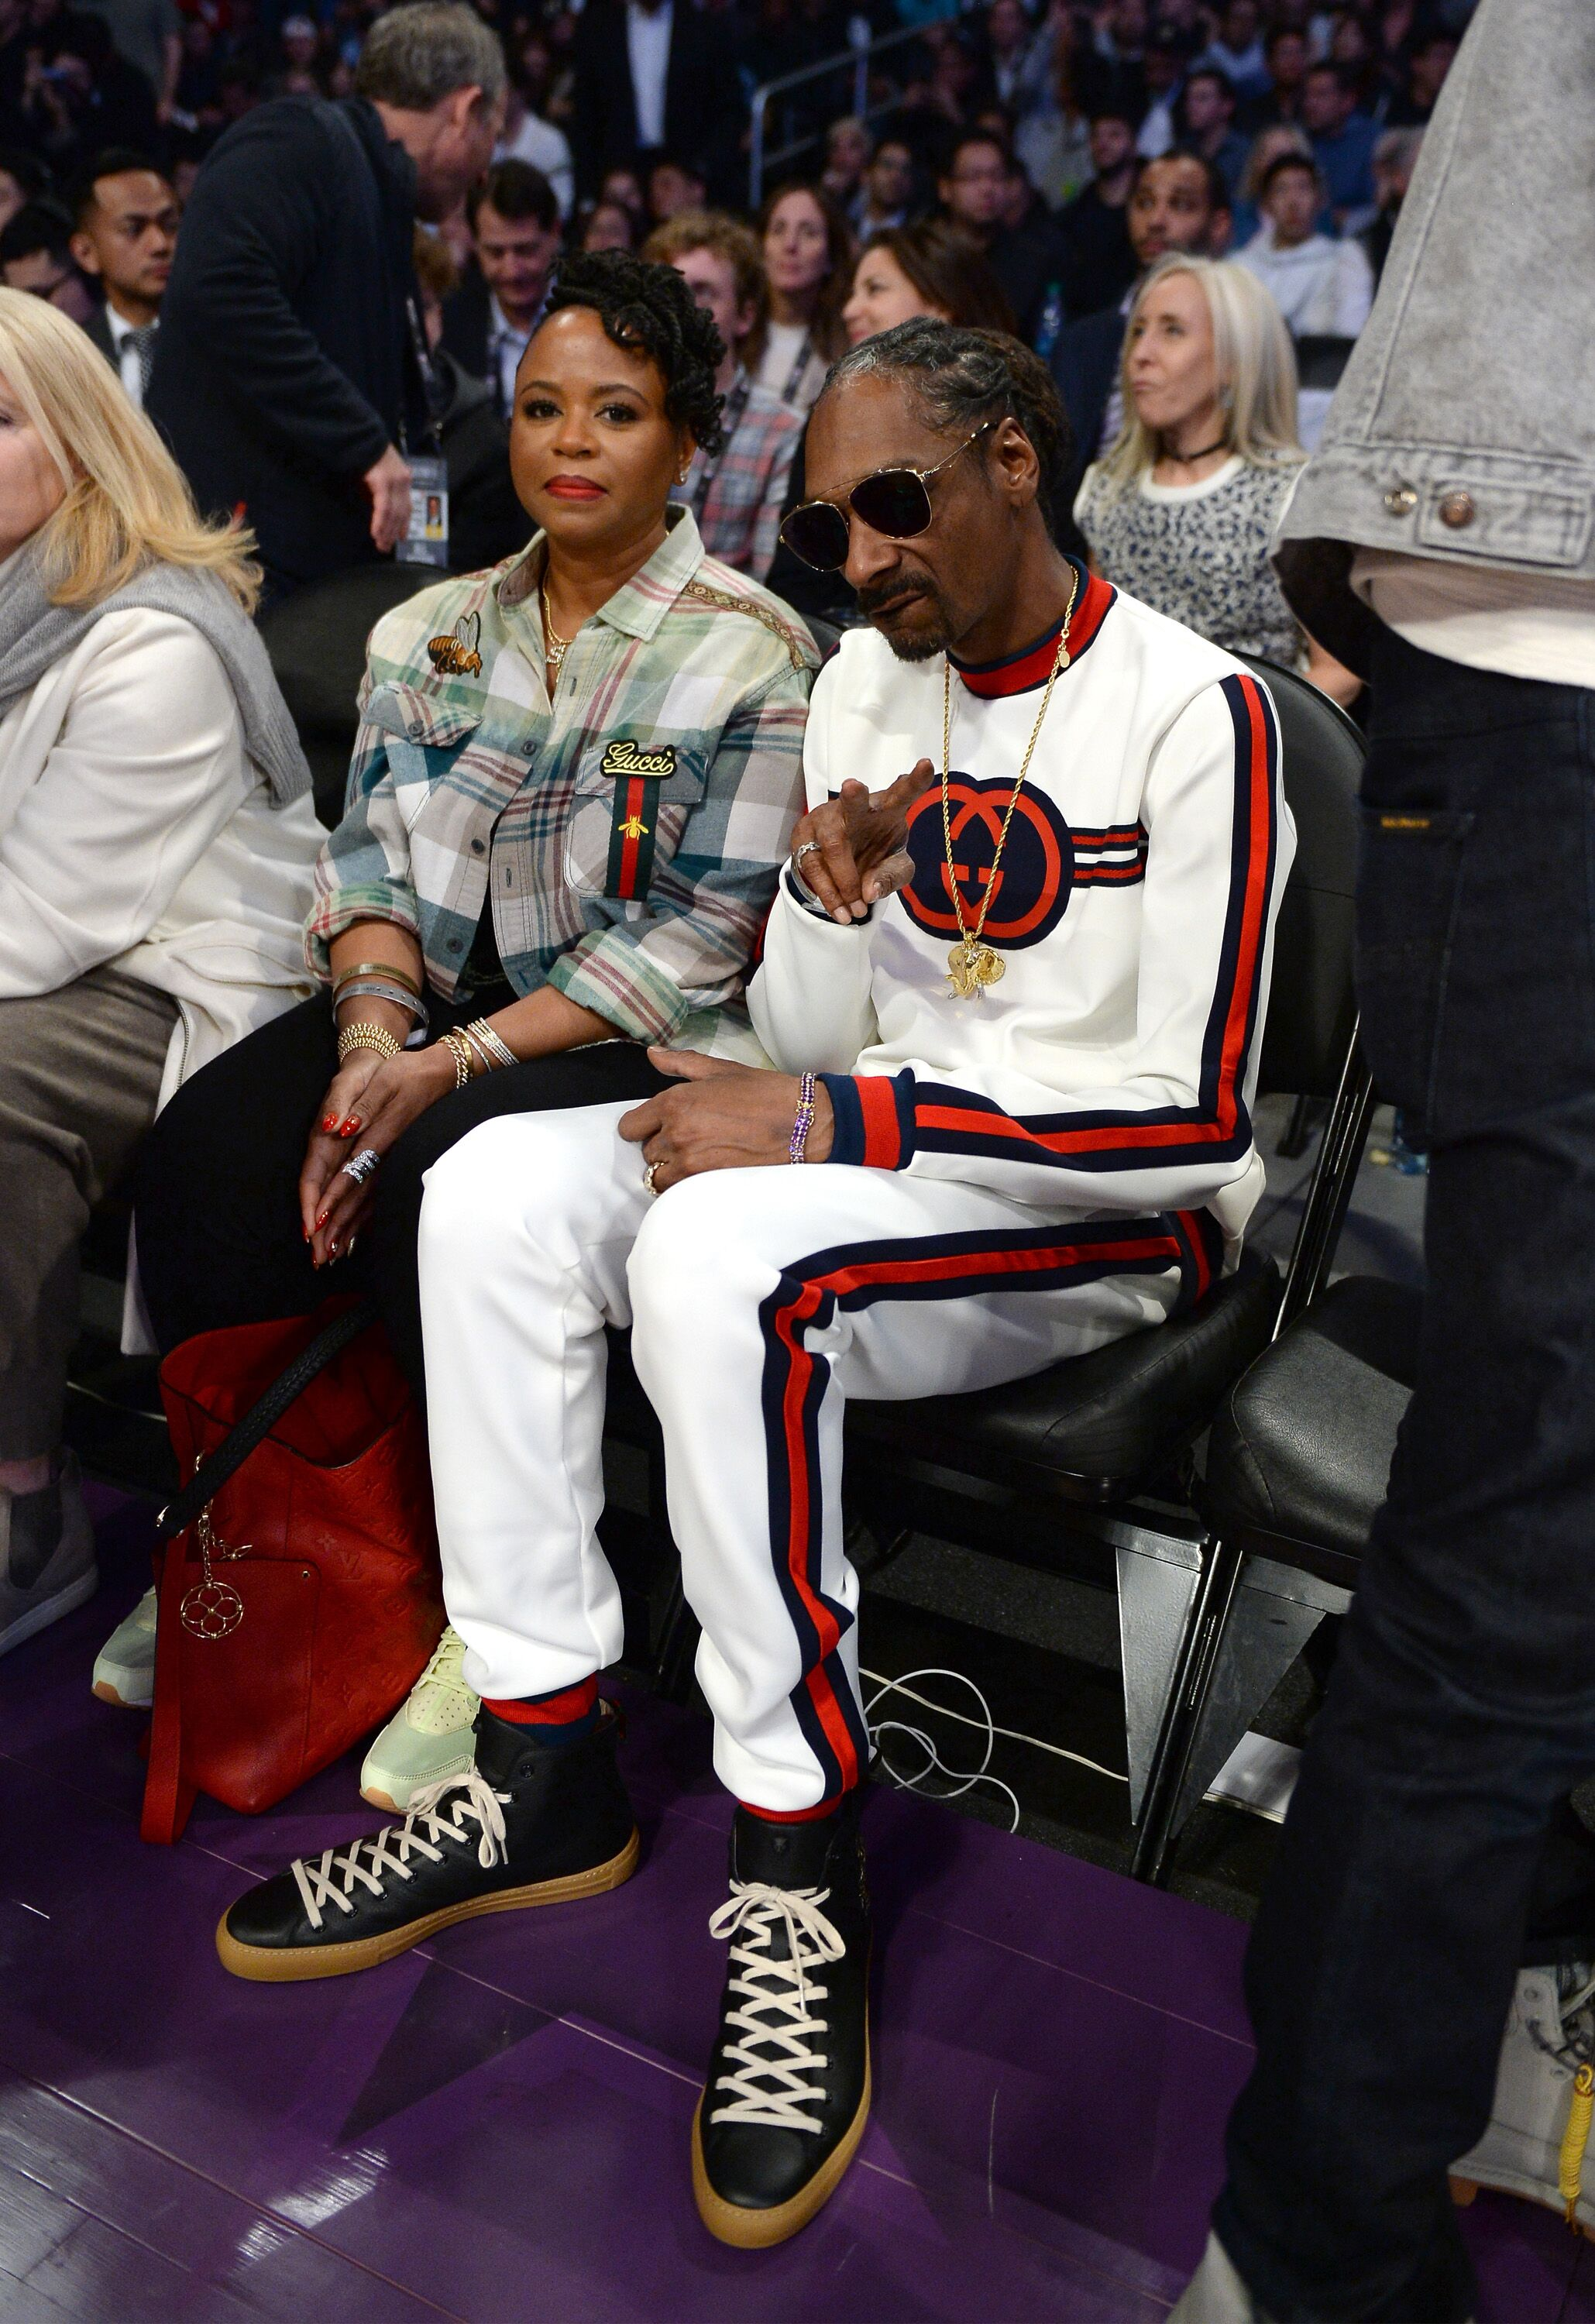 Snoop Dogg and Shante Broadus enjoying an NBA game | Source: Getty Images/GlobalImagesUkraine